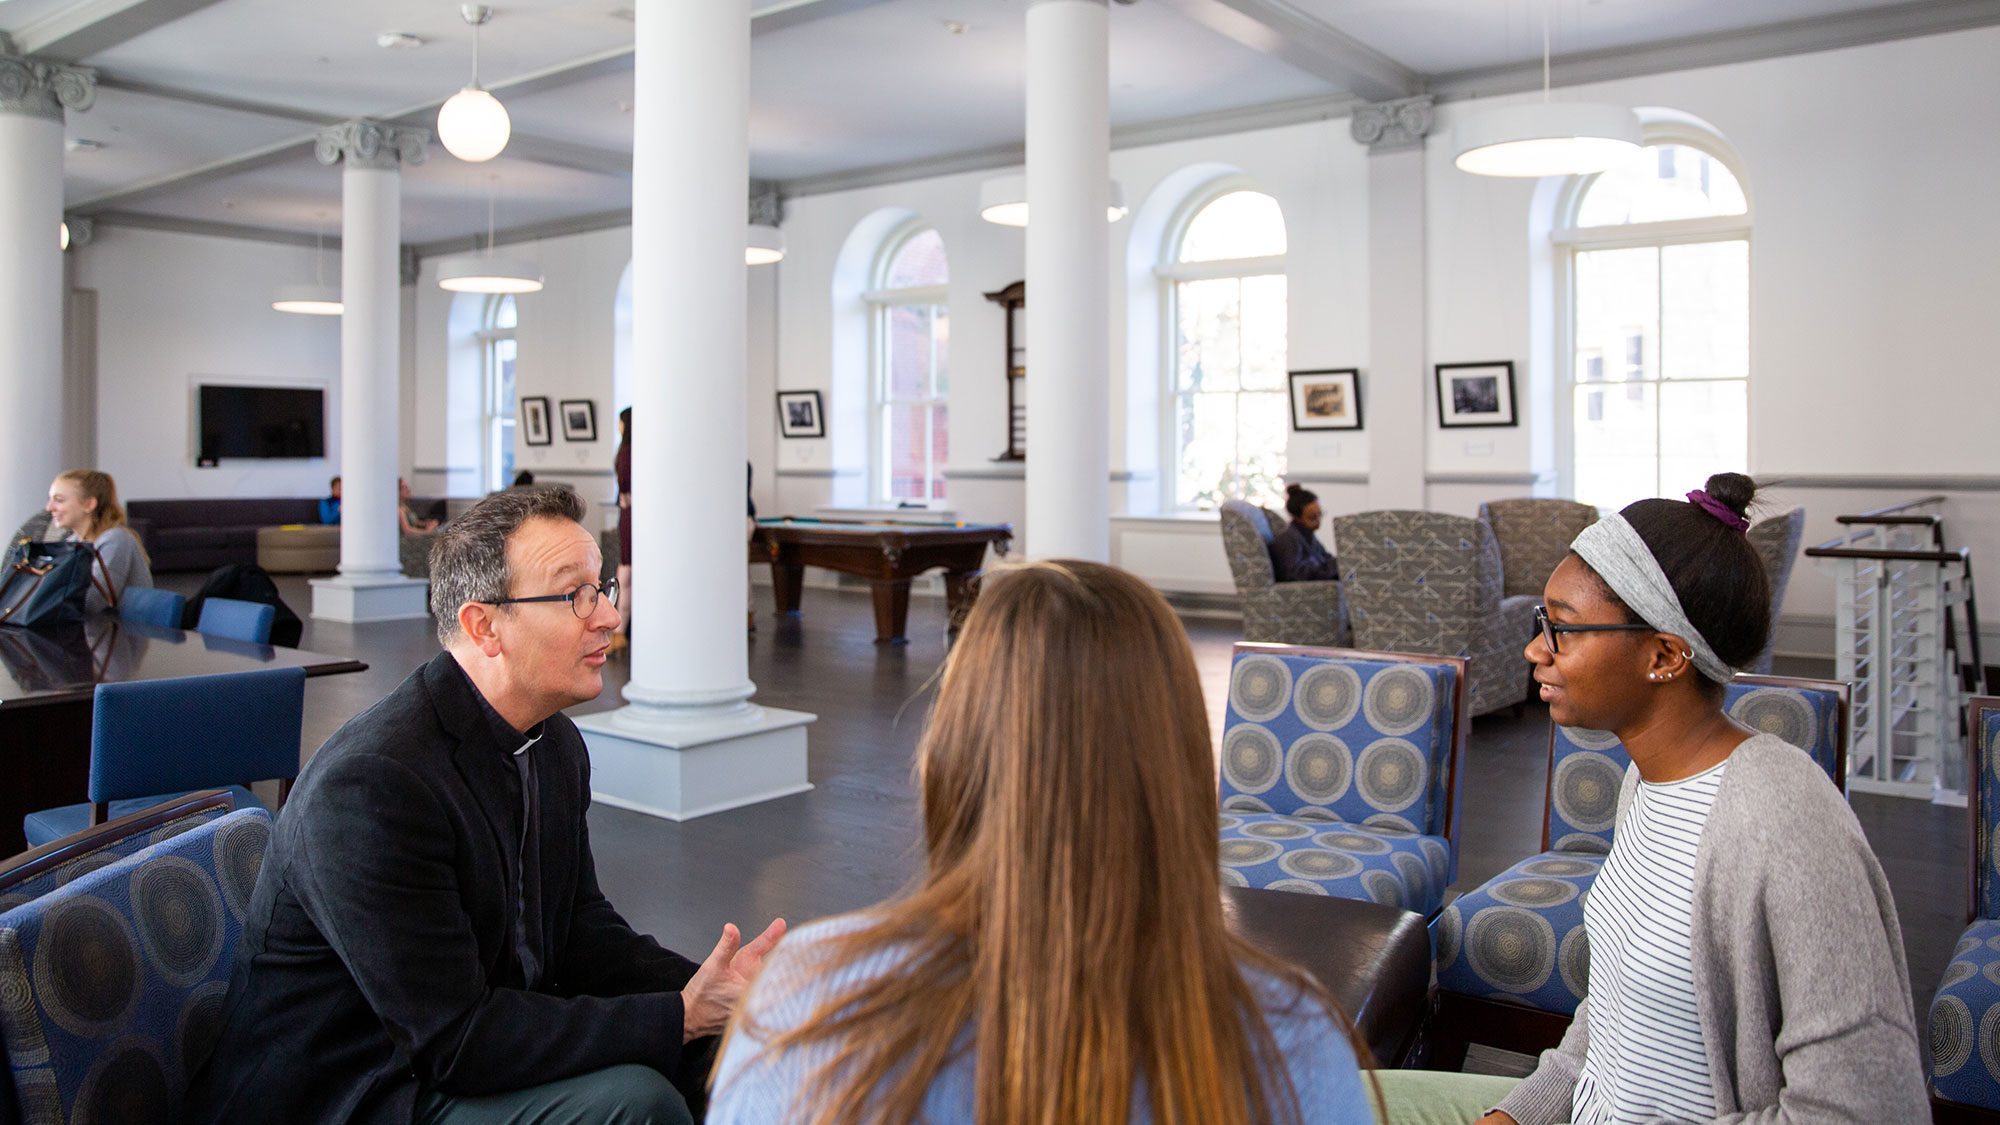 Fr. Bosco talks with students in a campus residence.